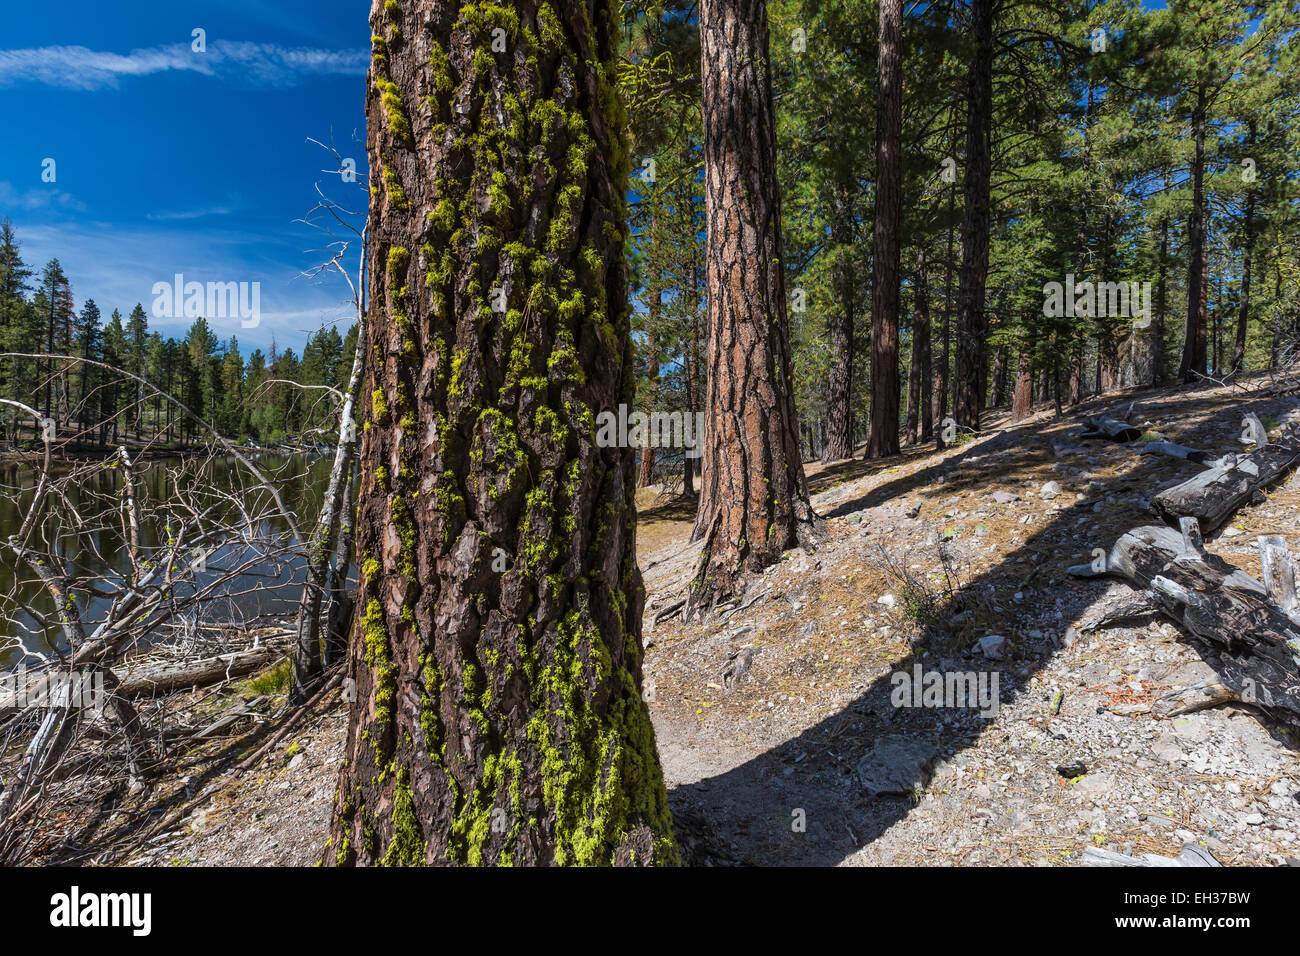 Red Fir, Abies magnifica, with a Ponderosa Pine, Pinus ponderosa, behind, in Lassen Volcanic National Park, California, - Stock Image